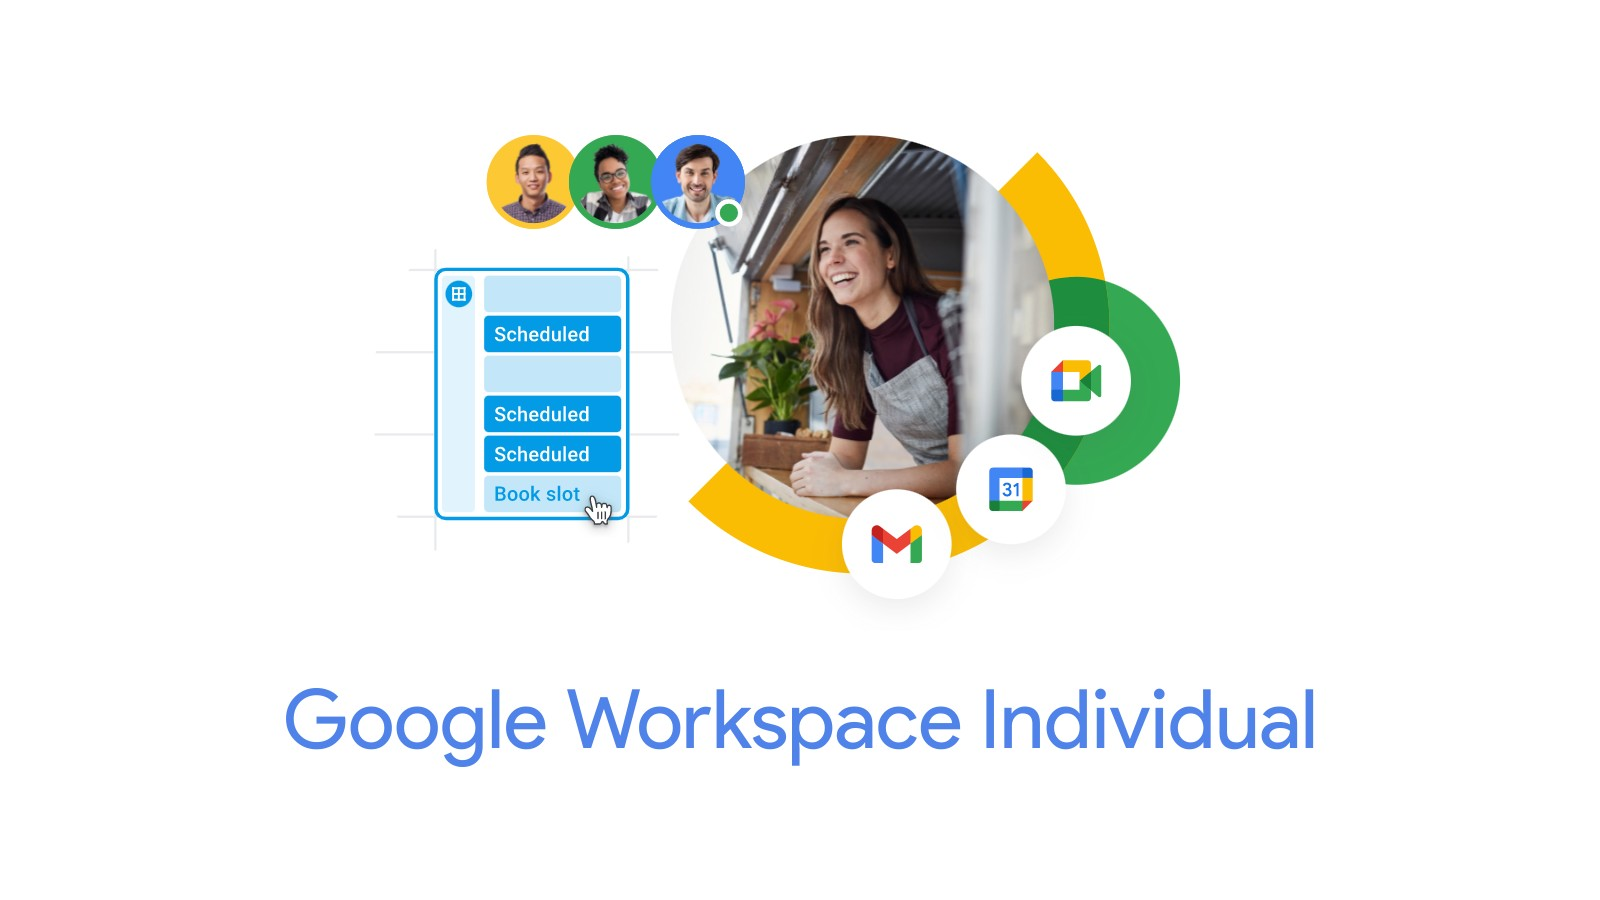 Google launches Workspace Individual for entrepreneurs and small business owners